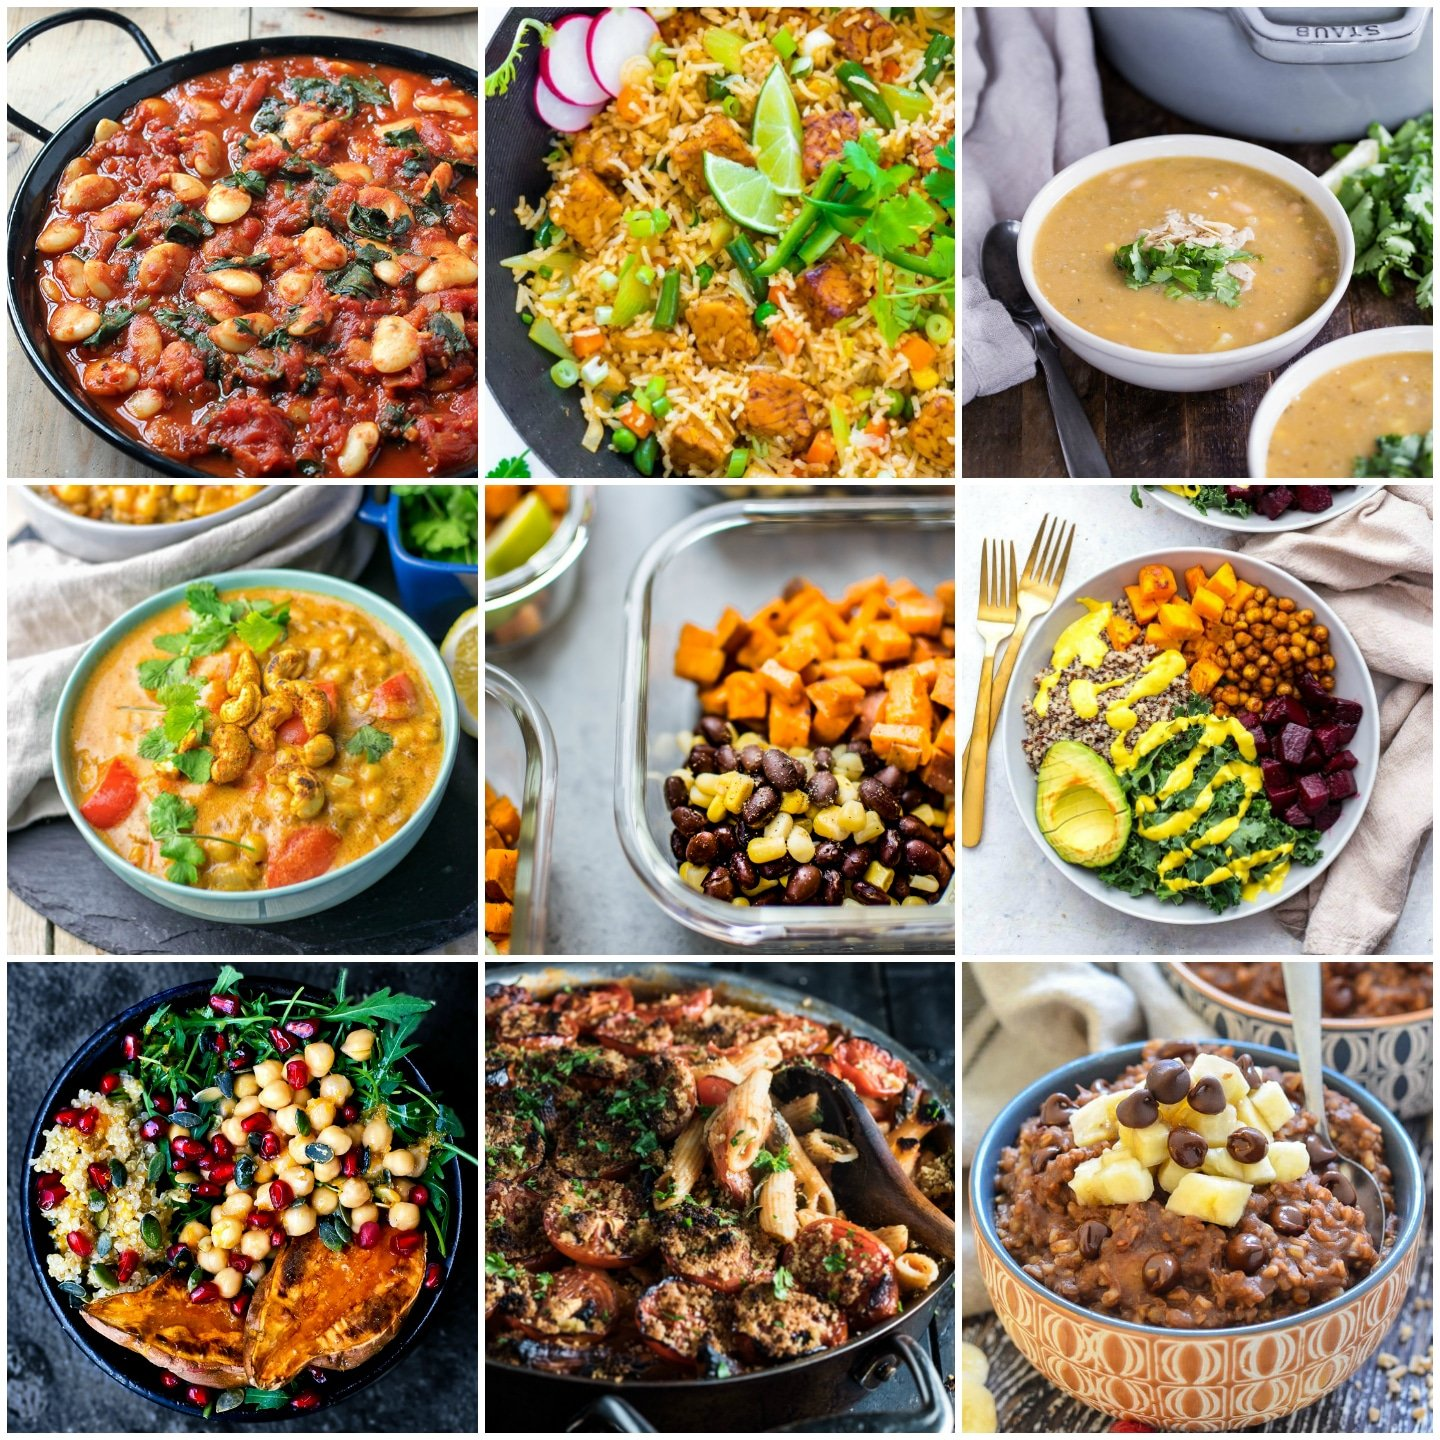 30 Delicious Vegan Meal Prep Recipes (Breakfast, Lunch